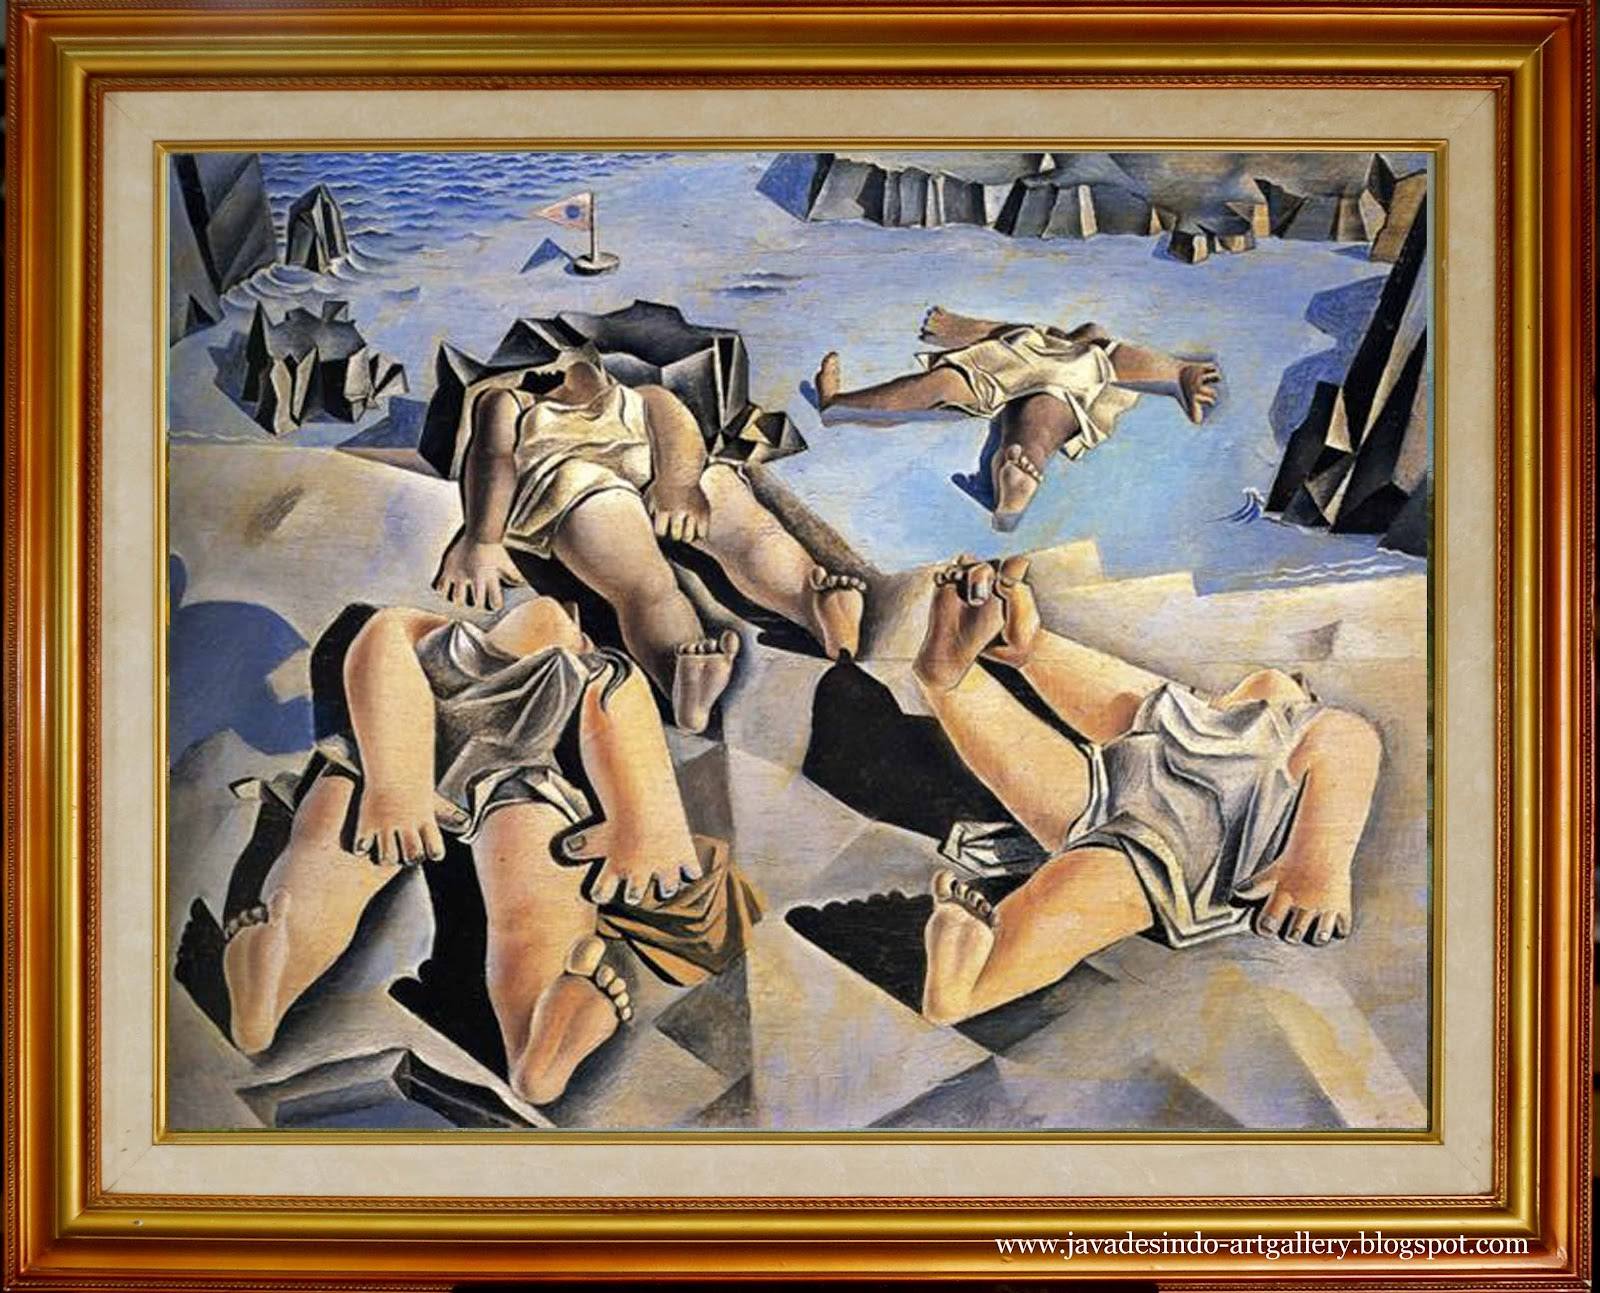 http://2.bp.blogspot.com/-kS6tUxpoXkw/UG2CYjzzQkI/AAAAAAAAO6E/XPa3lmAnLOw/s1600/Figures+Lying+on+the+Sand+by+Salvador+Dali,++125cm+X+160cm,+Rp.13.500.000+(Framed).jpg